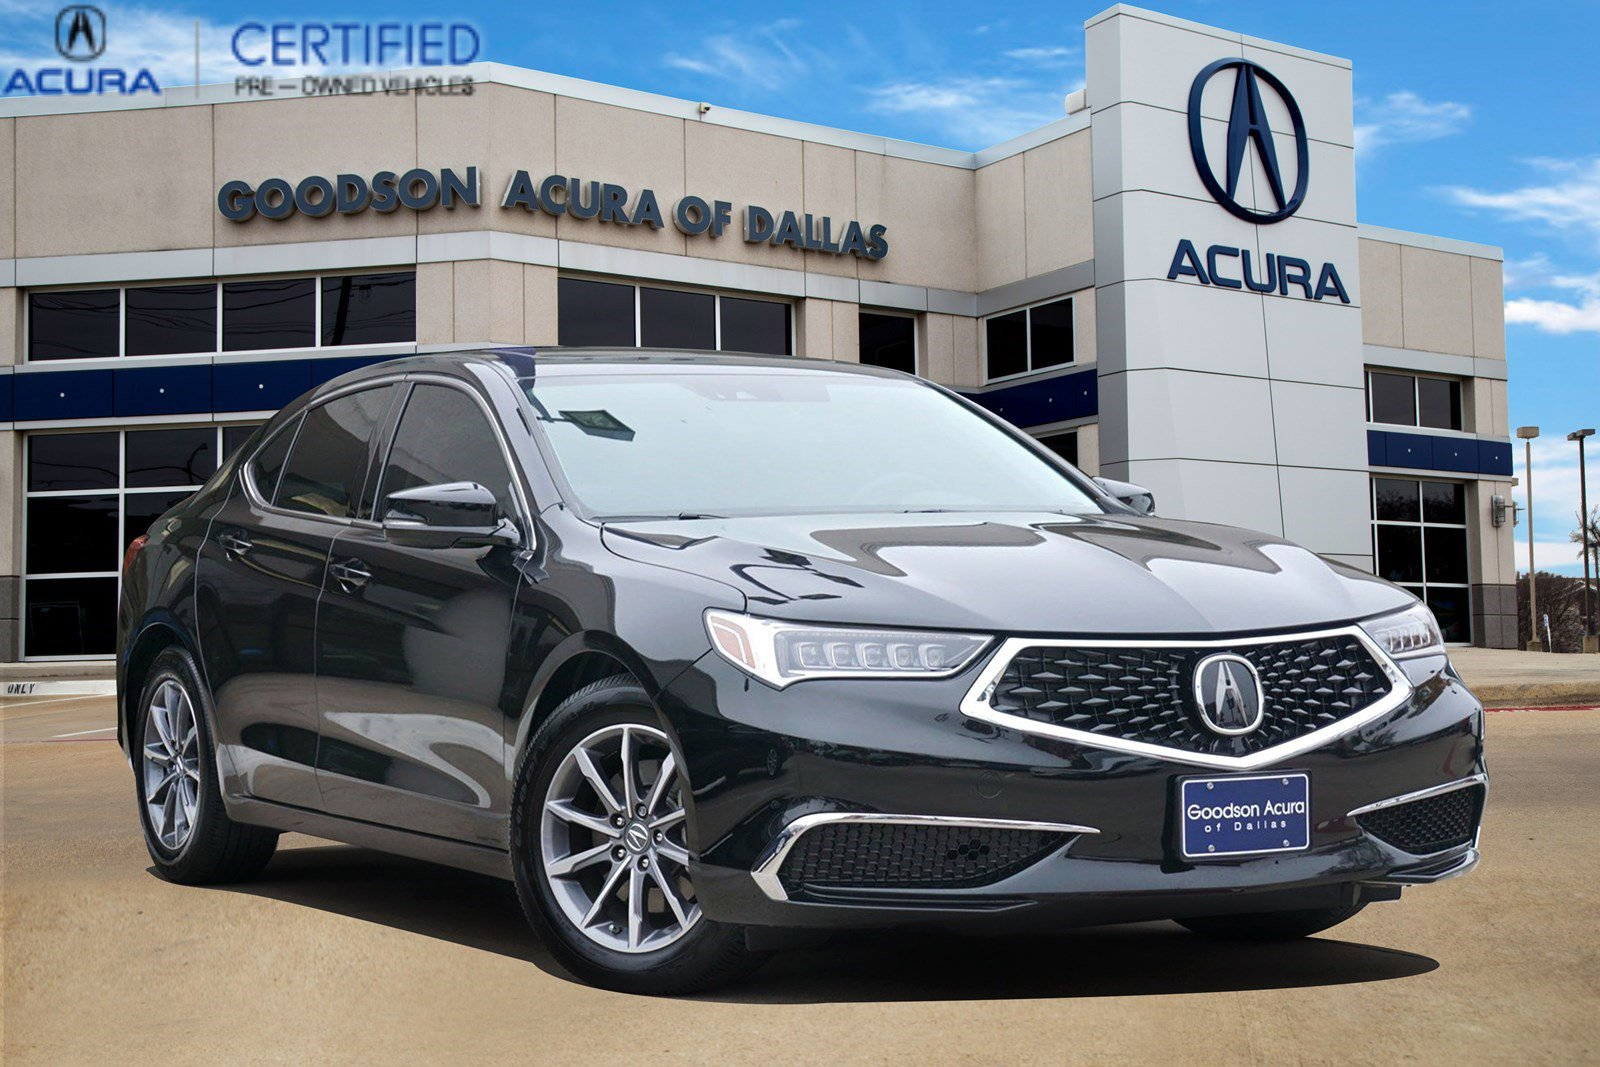 2020 Acura TLX w/ Technology Package image